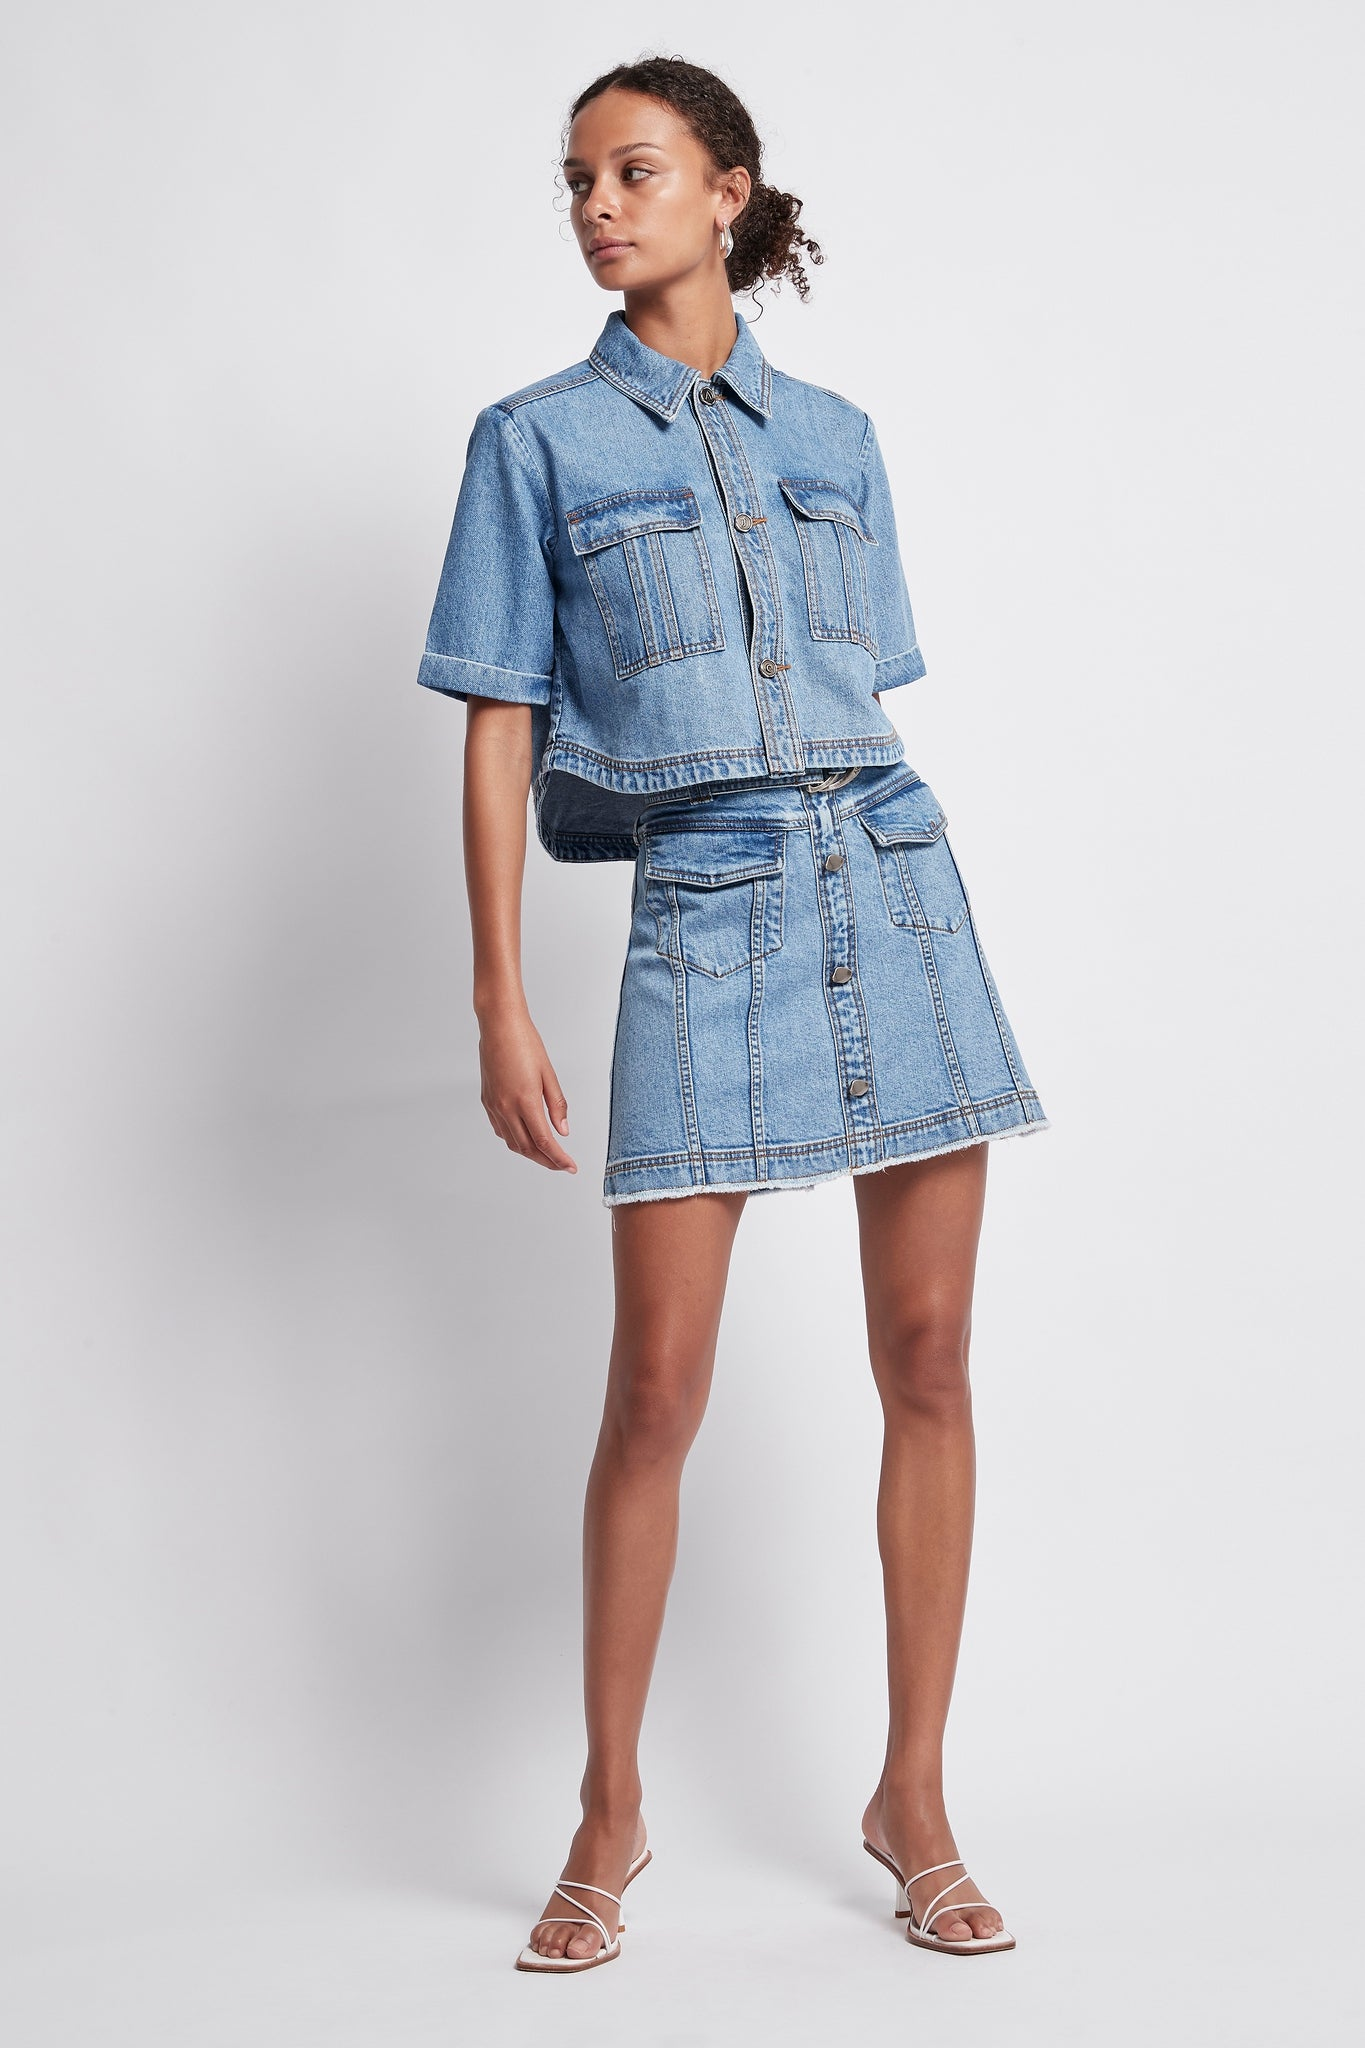 Best Jeans, Denim Jackets, Denim Skirts, and Denim Shirts